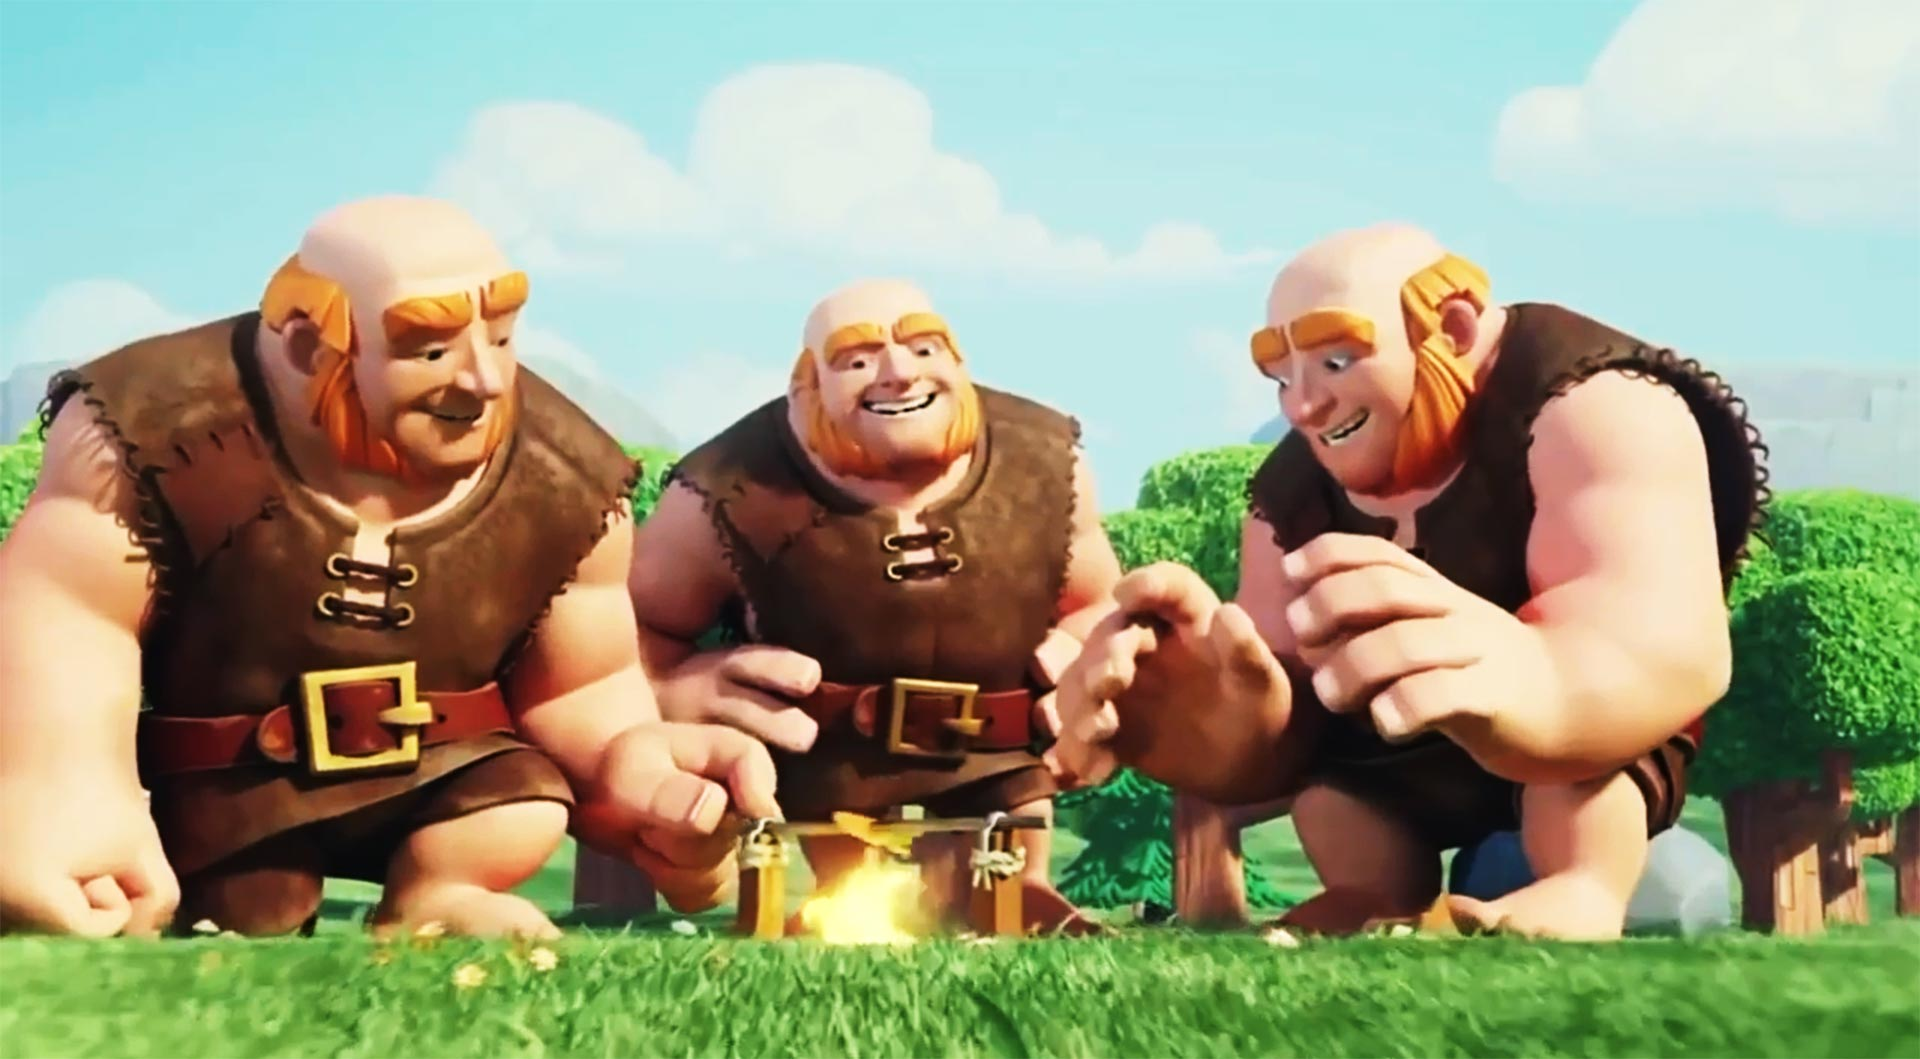 15 Best Clash of Clans HD Wallpapers 1920x1059